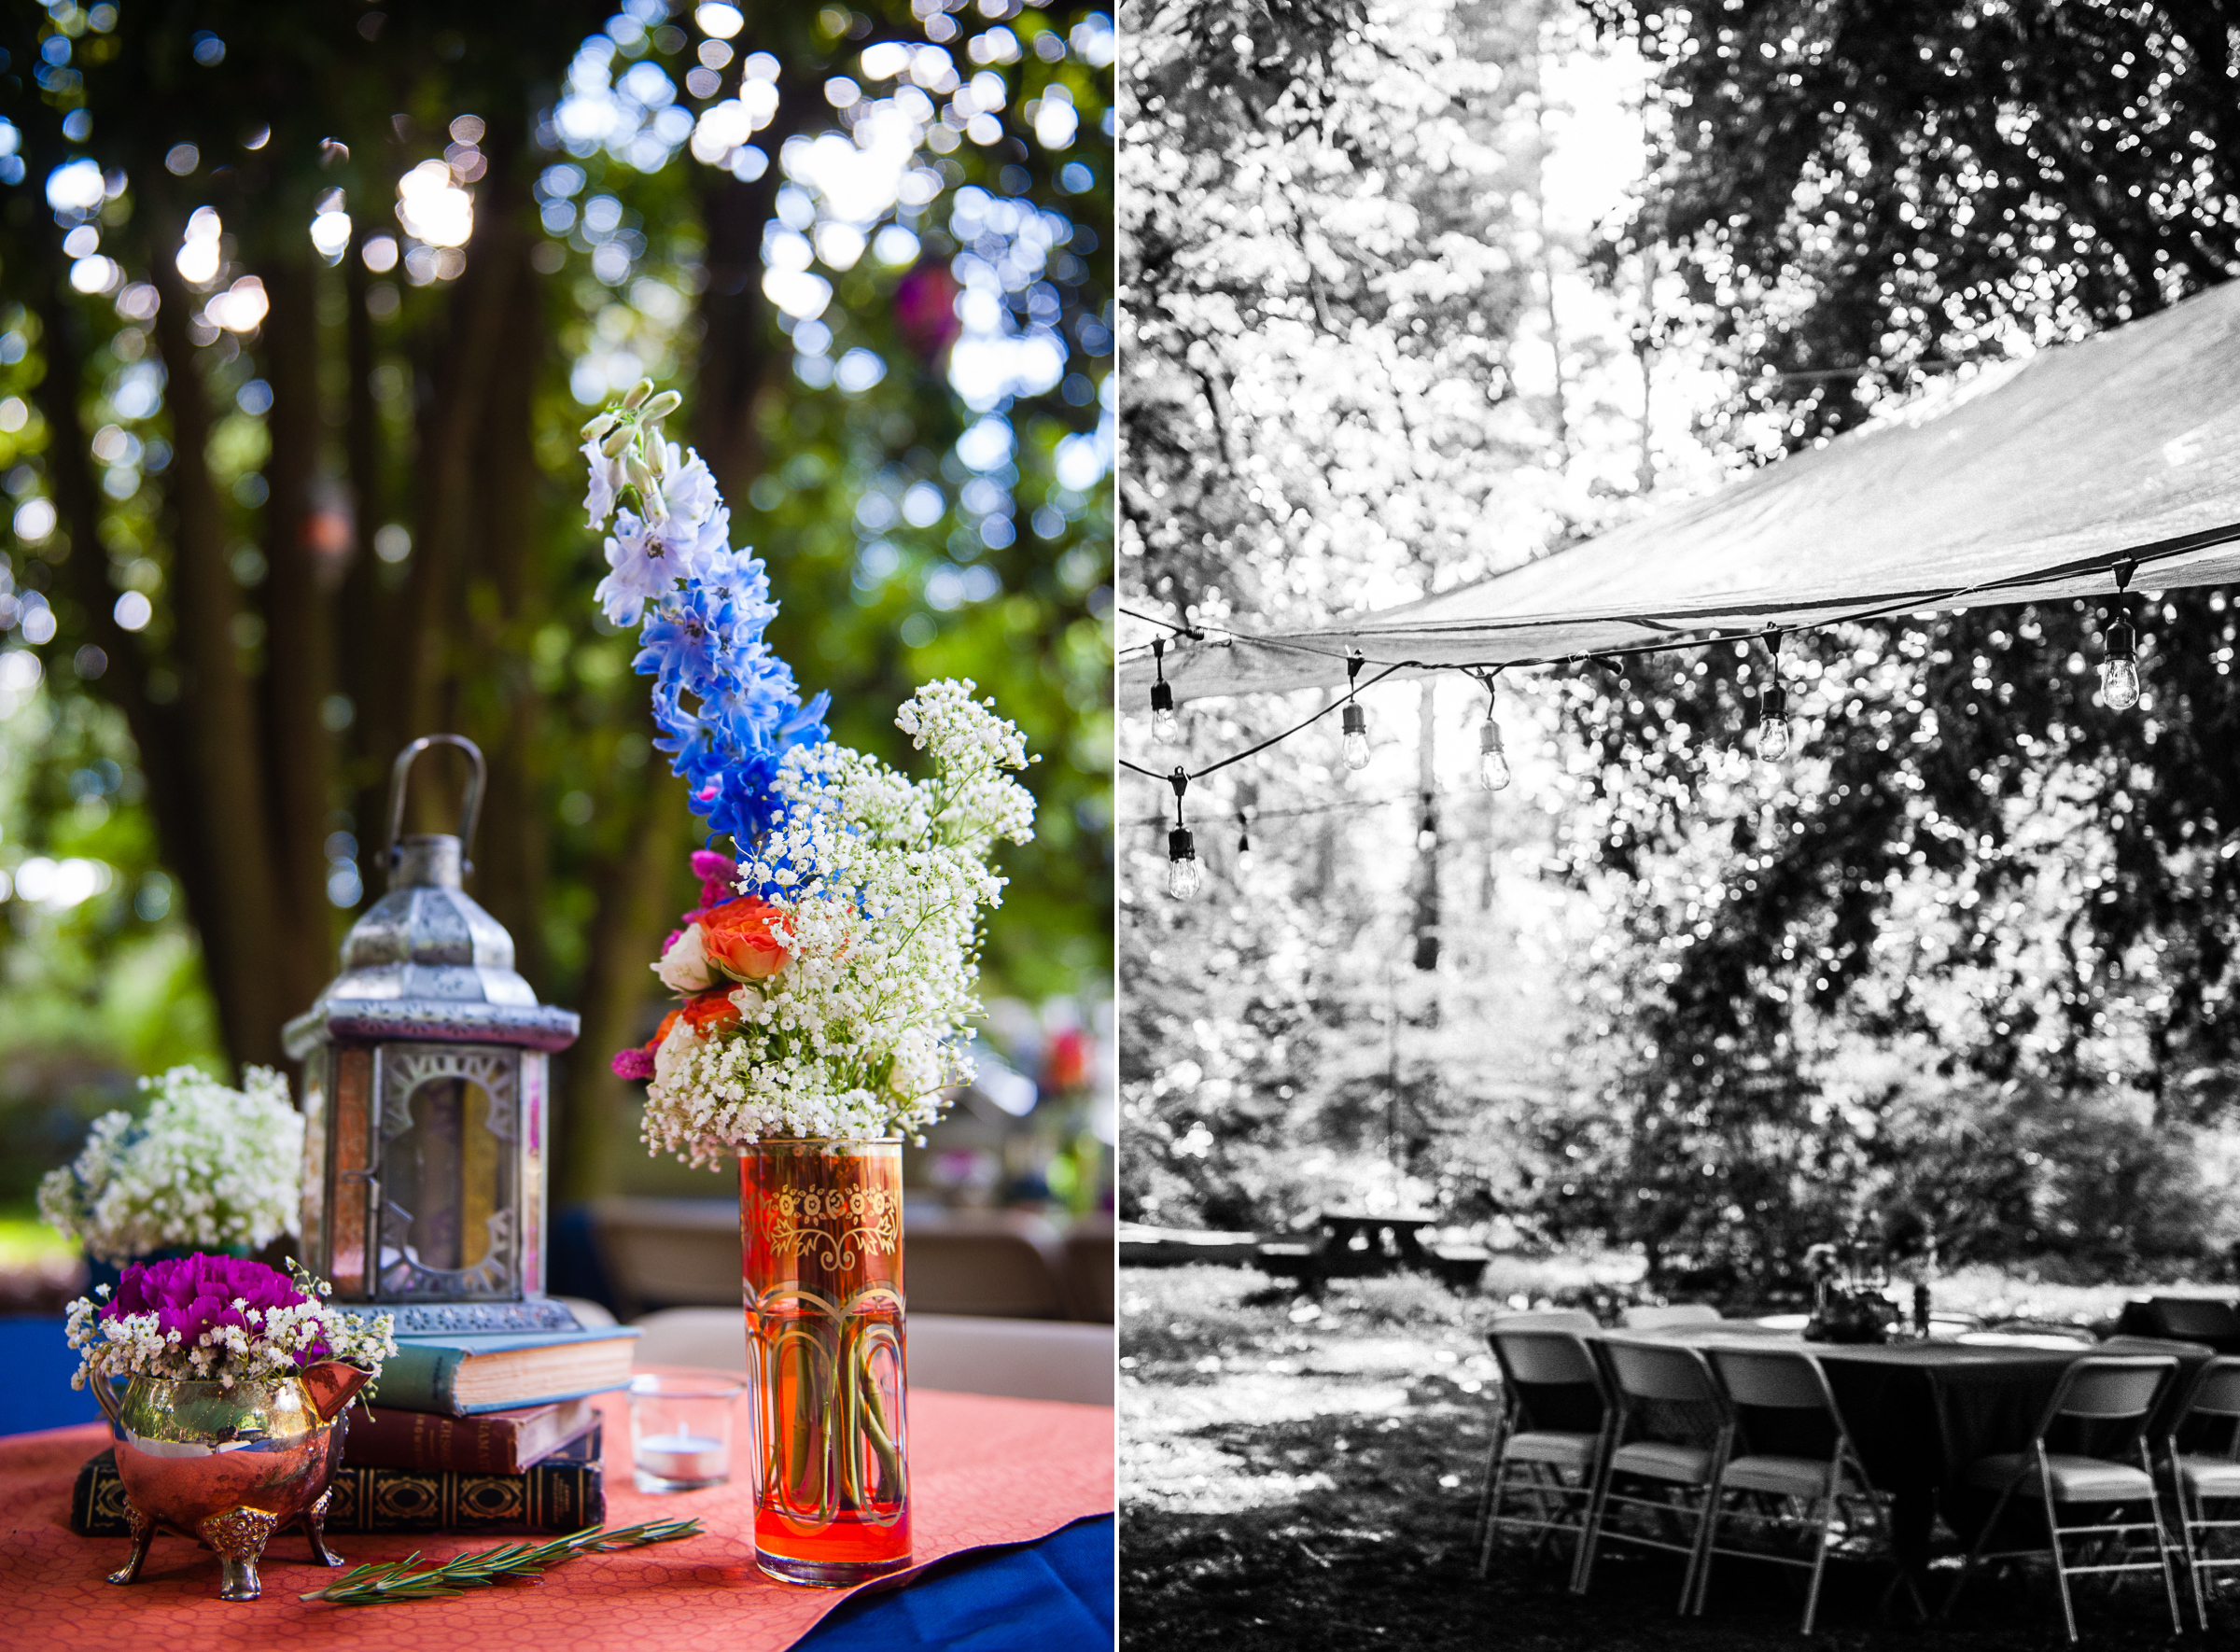 blue and white flowers adorned the tables underneath a green tarp with lights was the setting for this backyard asheville wedding